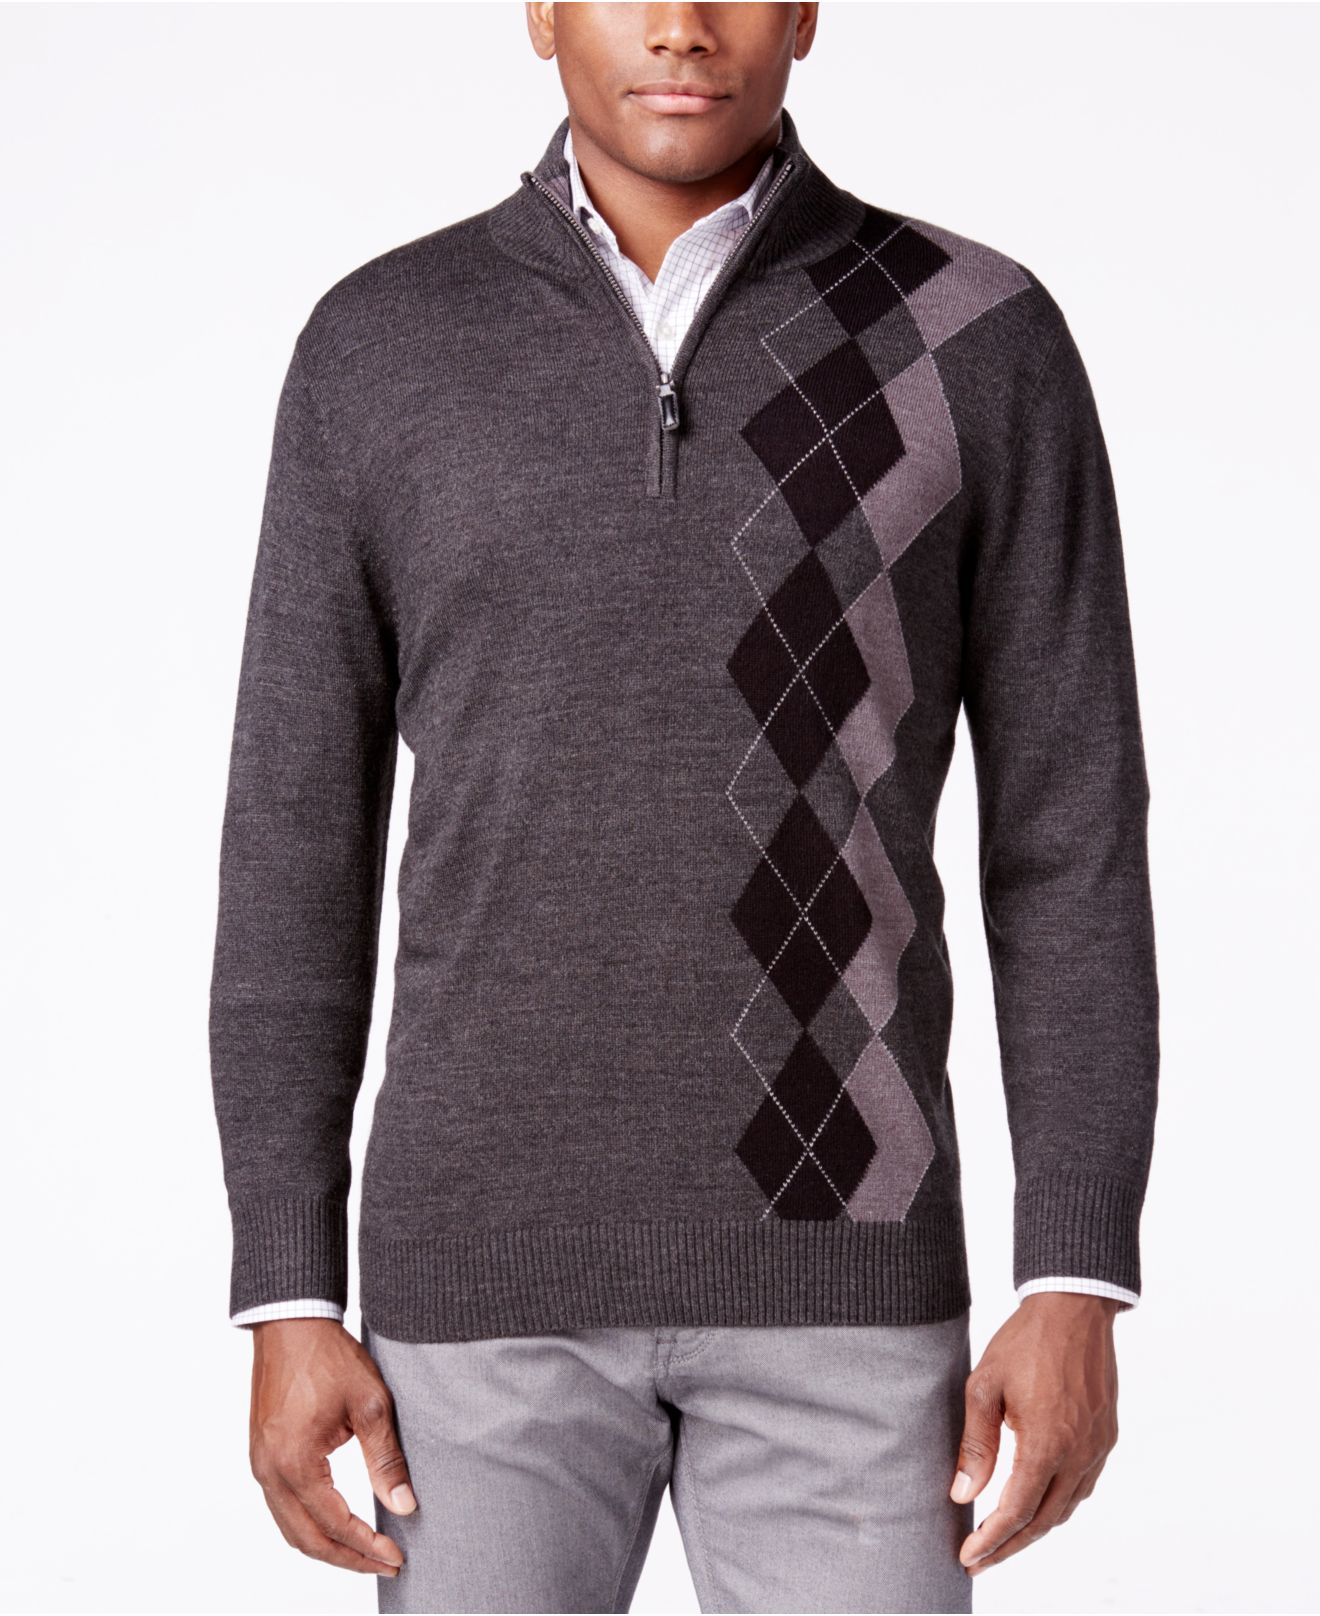 Tricots St Raphael Sweaters